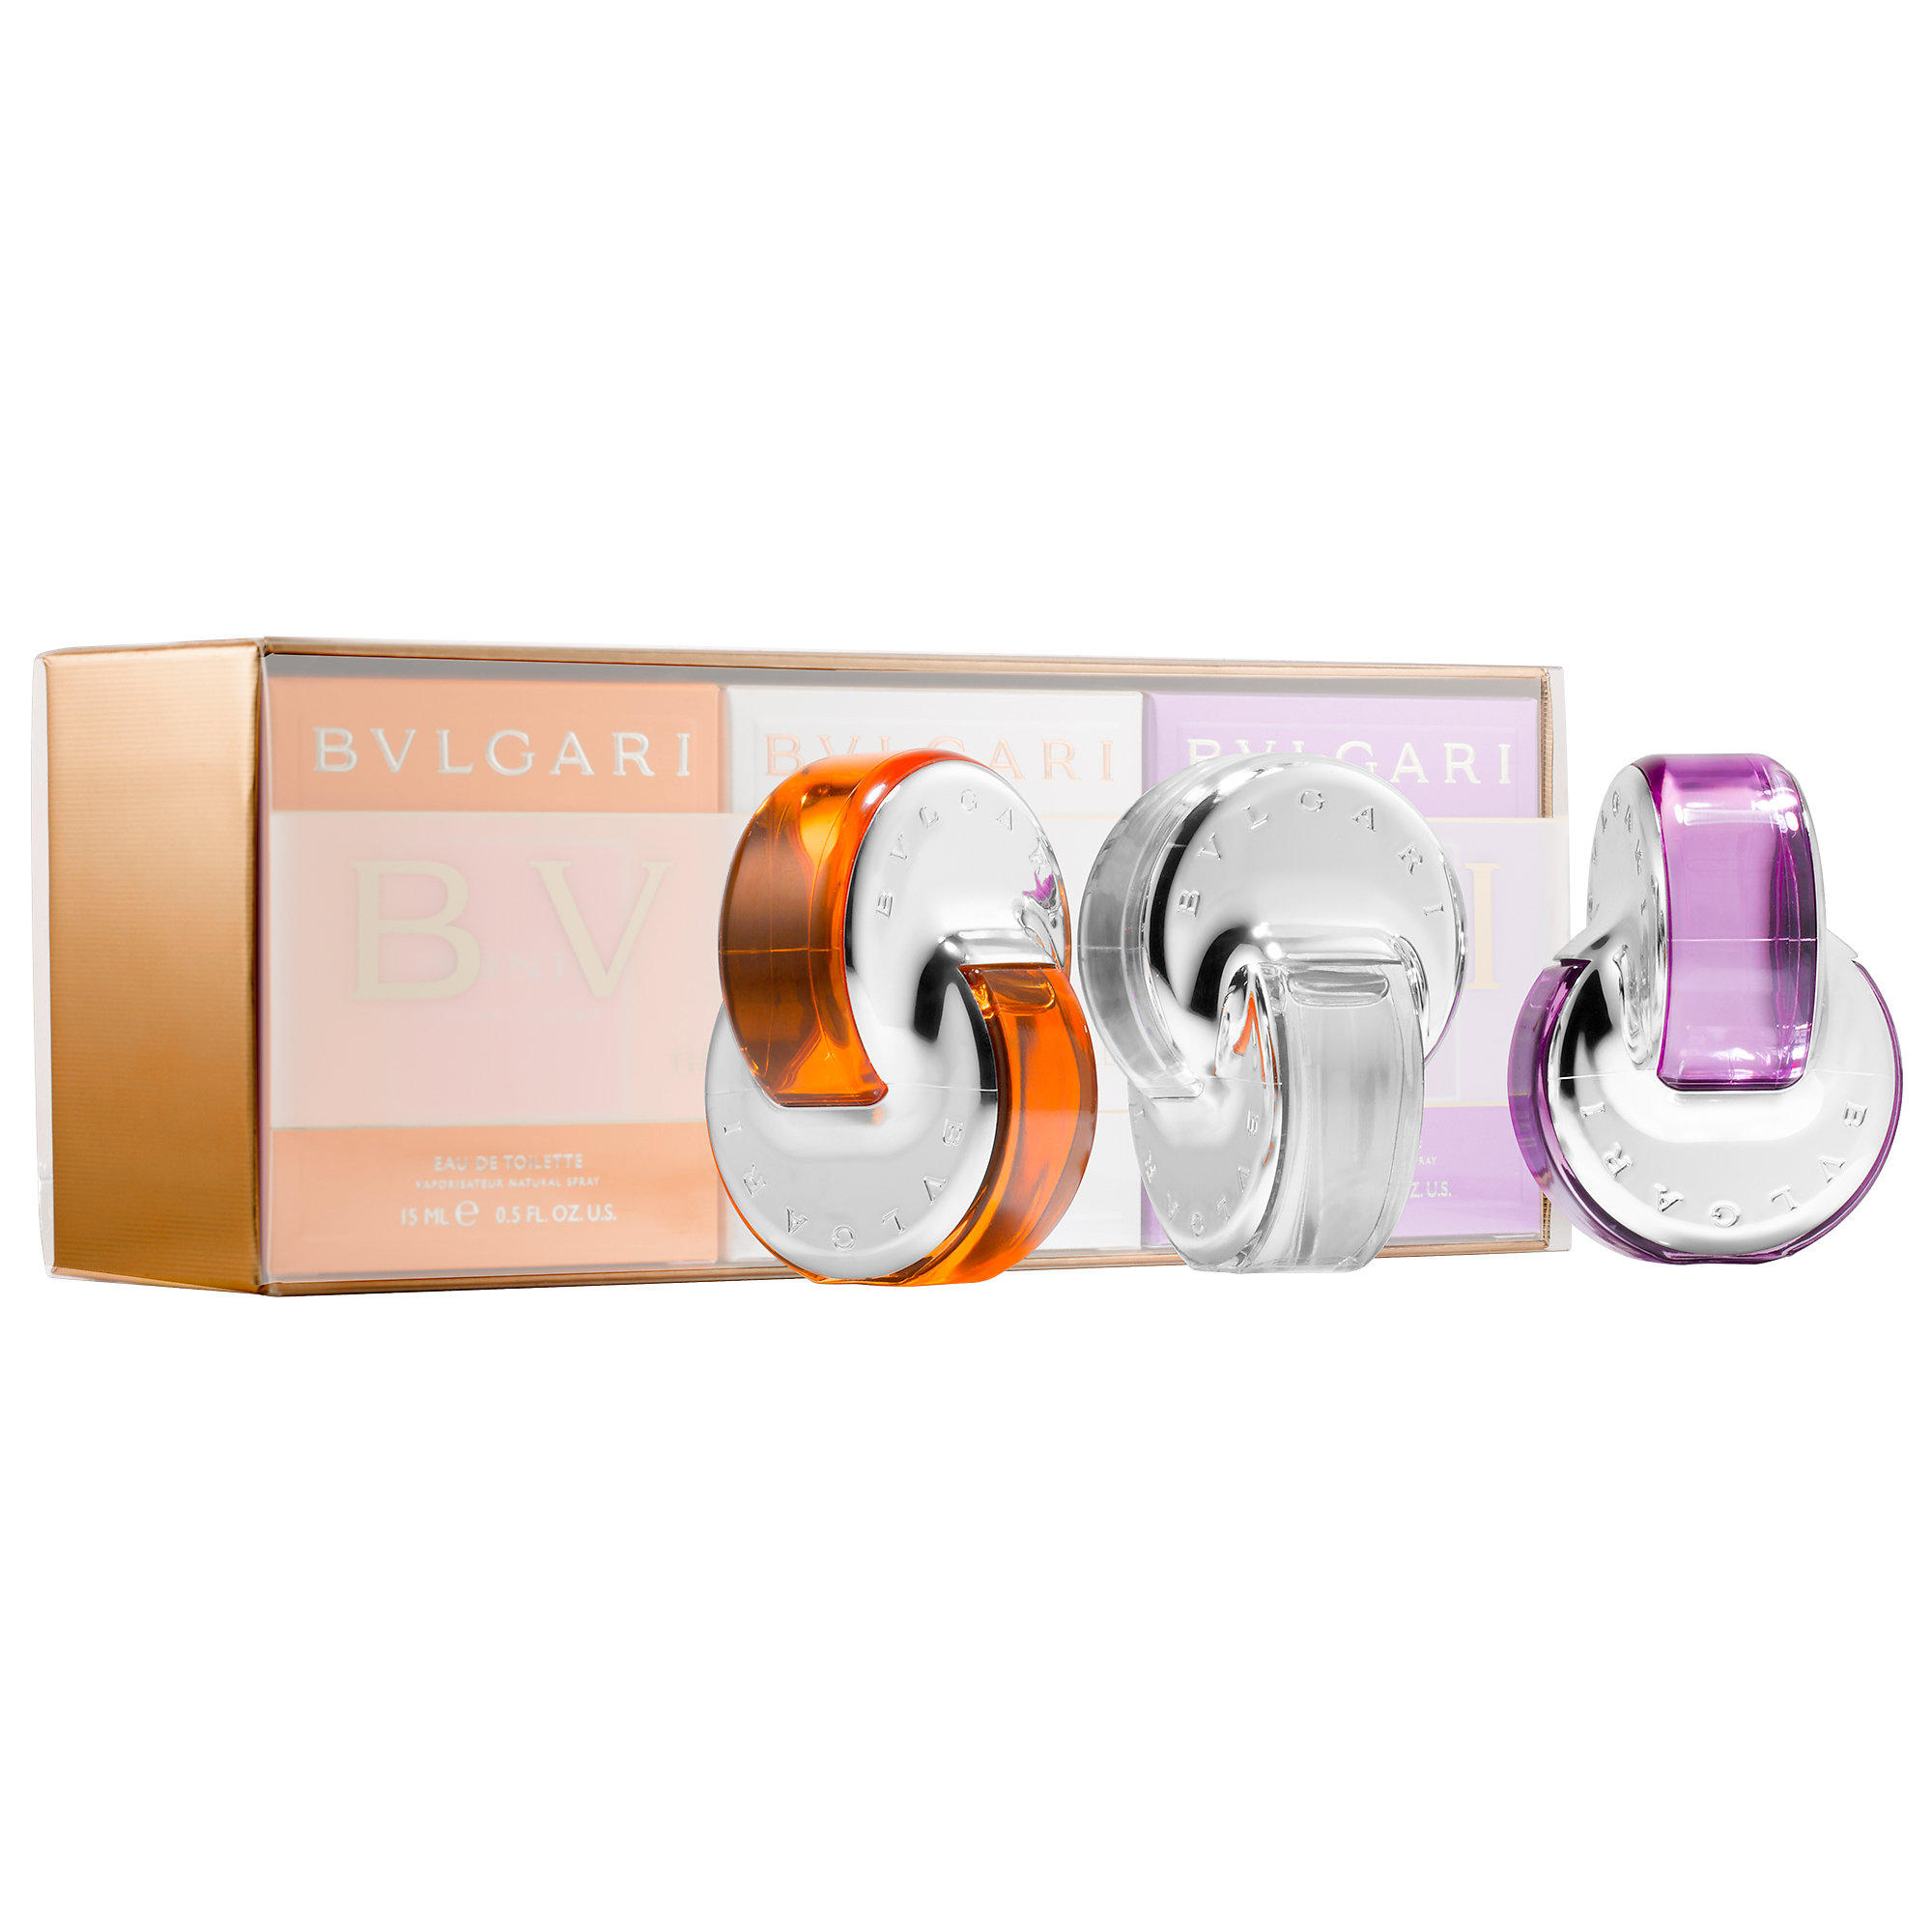 New ReleaseBvlgari launched New Omnia Purse Spray Collection